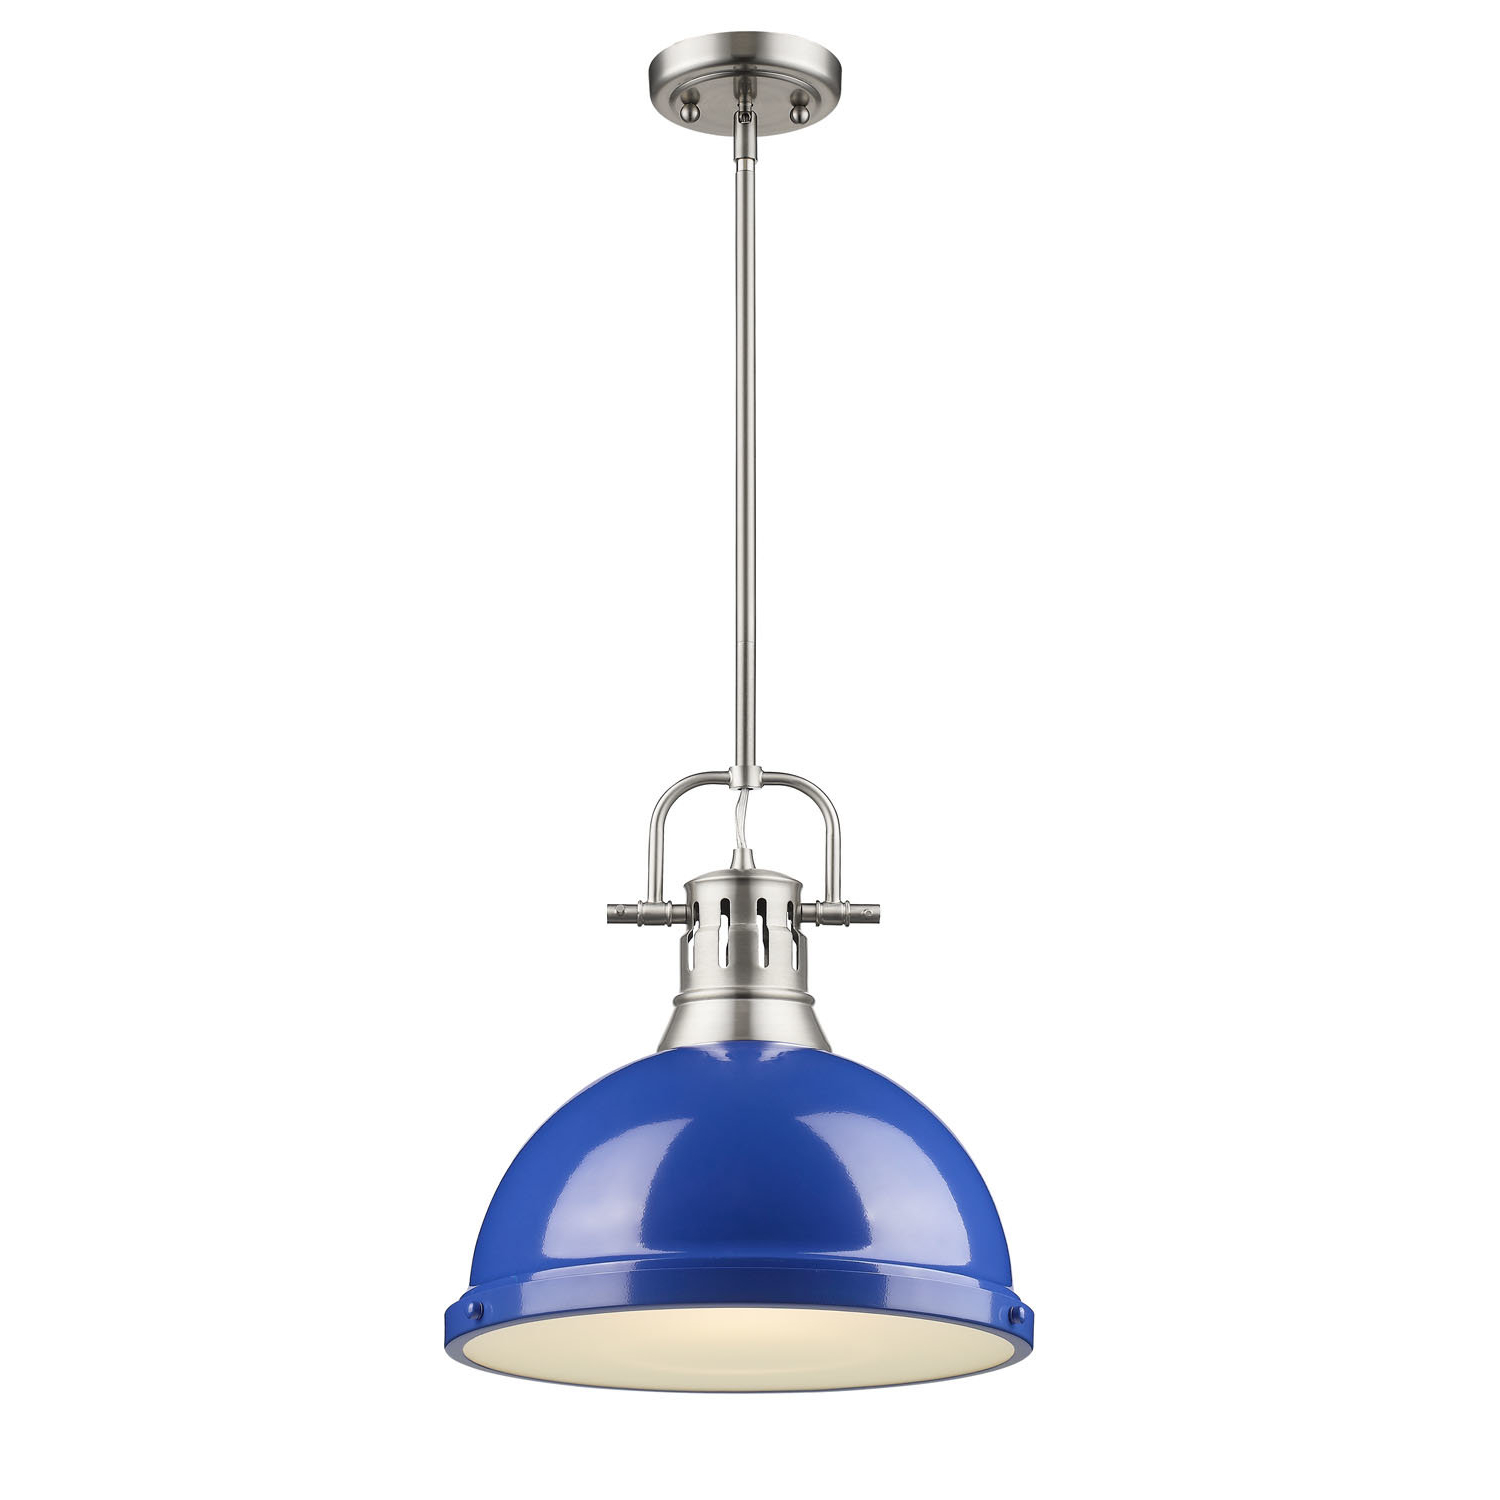 Most Recently Released Bodalla 1 Light Single Dome Pendants With Regard To Bodalla 1 Light Single Dome Pendant (Gallery 8 of 20)